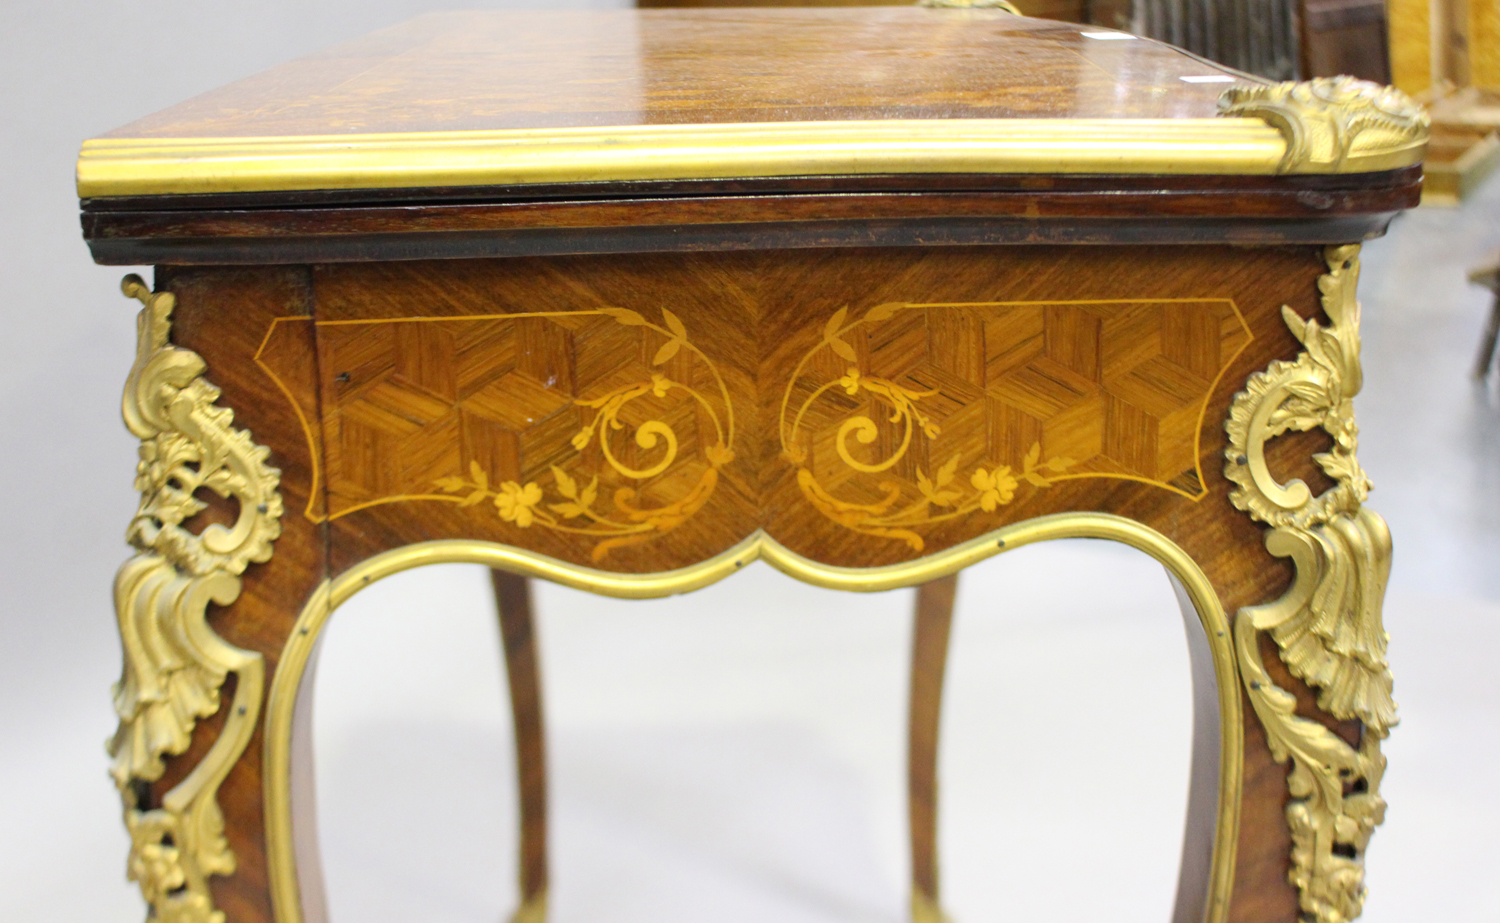 A late 19th century Louis XV style kingwood and parquetry veneered fold-over card table with gilt - Image 3 of 7